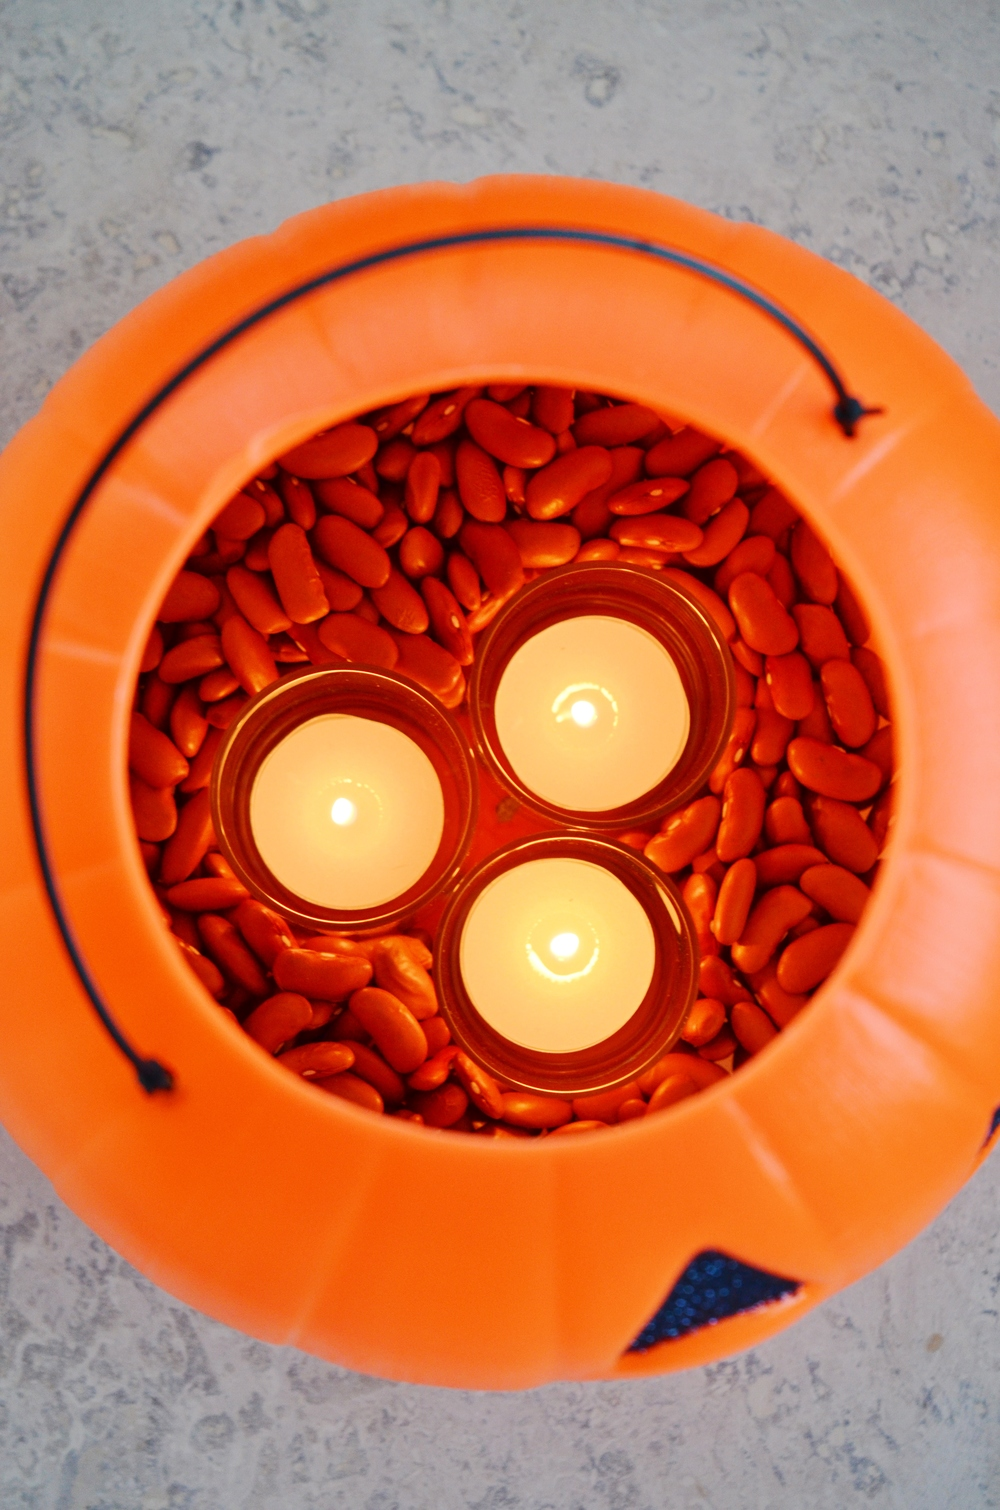 The large opening of the lantern allows the heat from the tea light candles to escape easily.